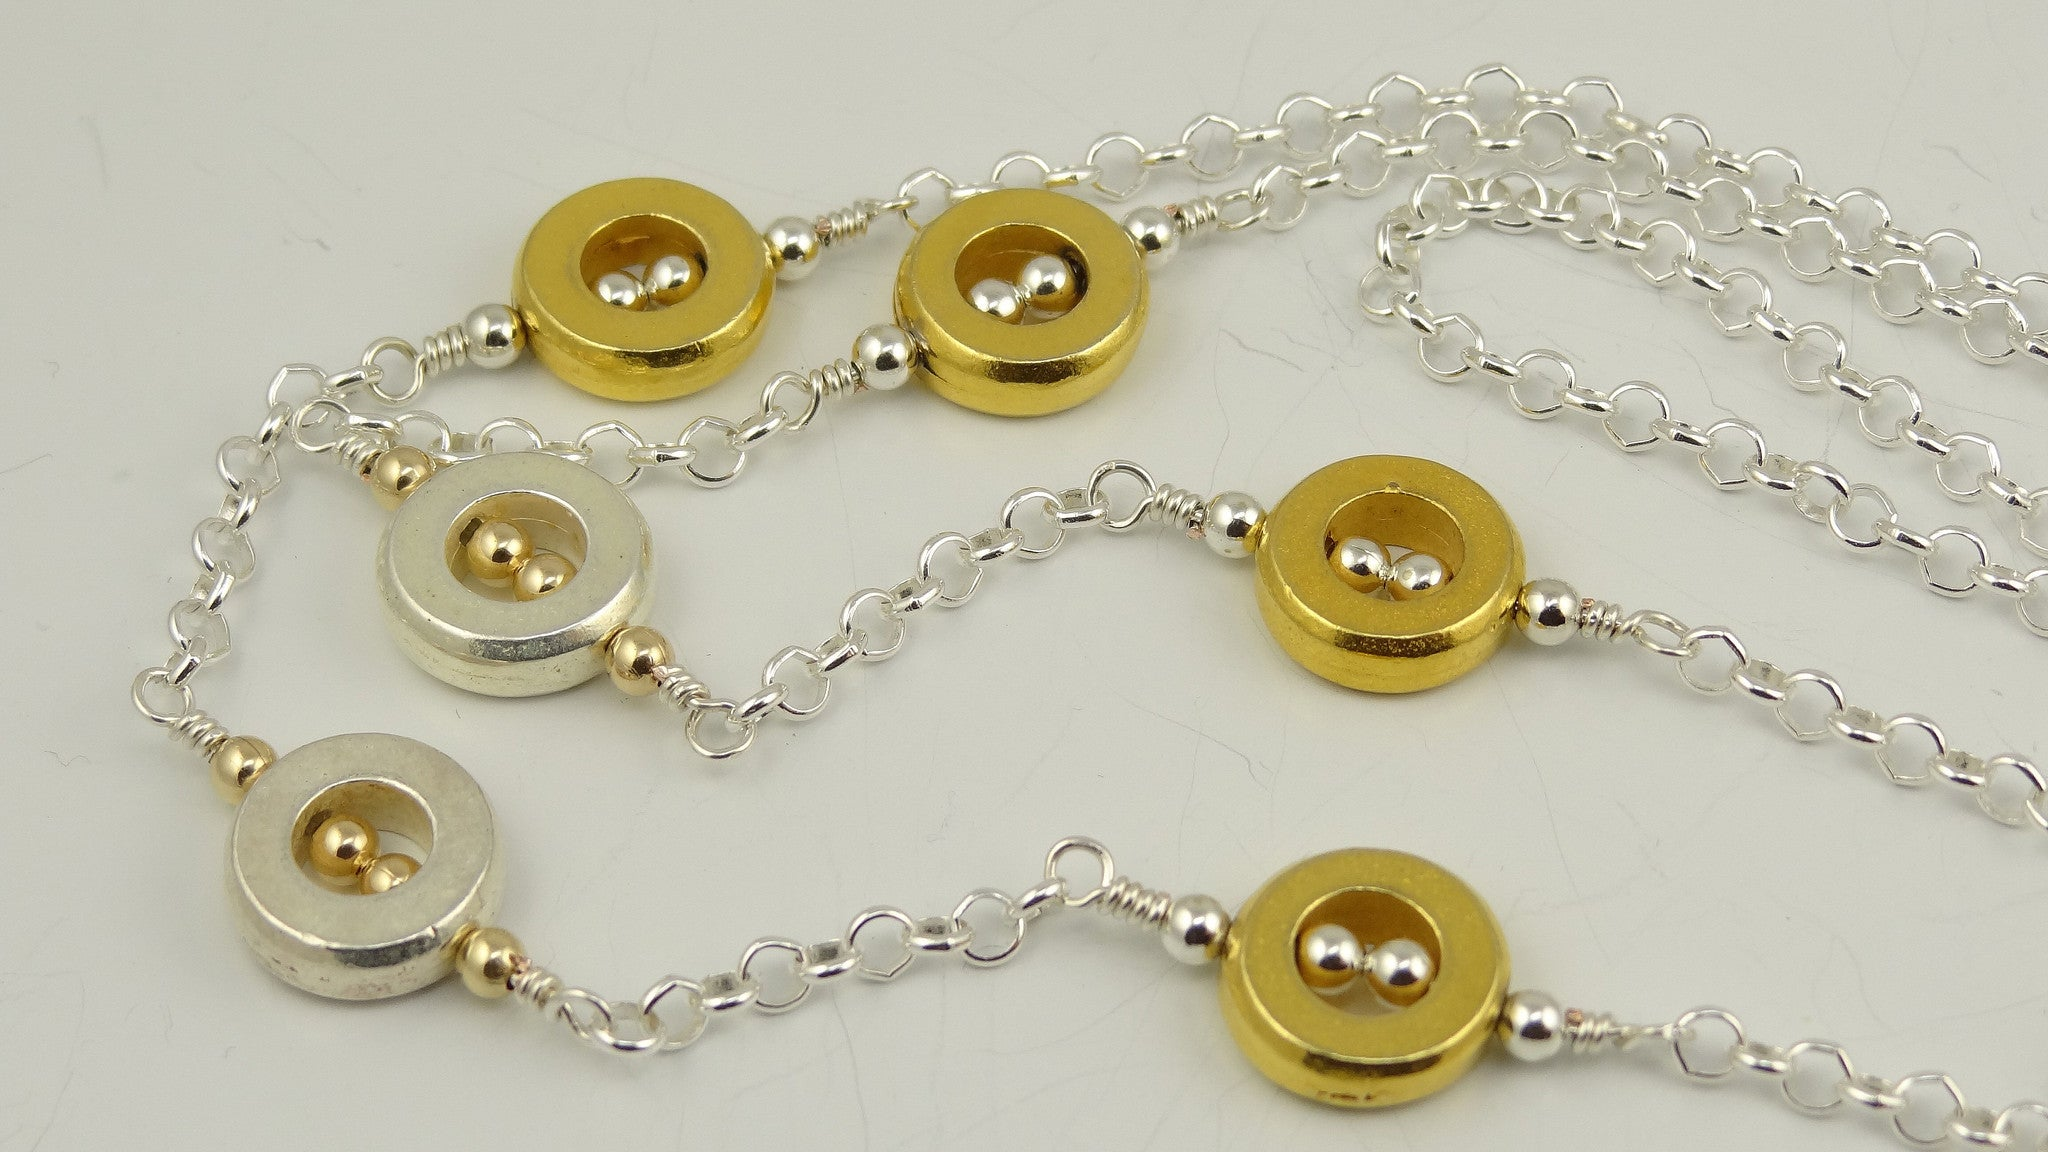 Custom, One-of-a-Kind Mixed Metal Eyeglass Chain